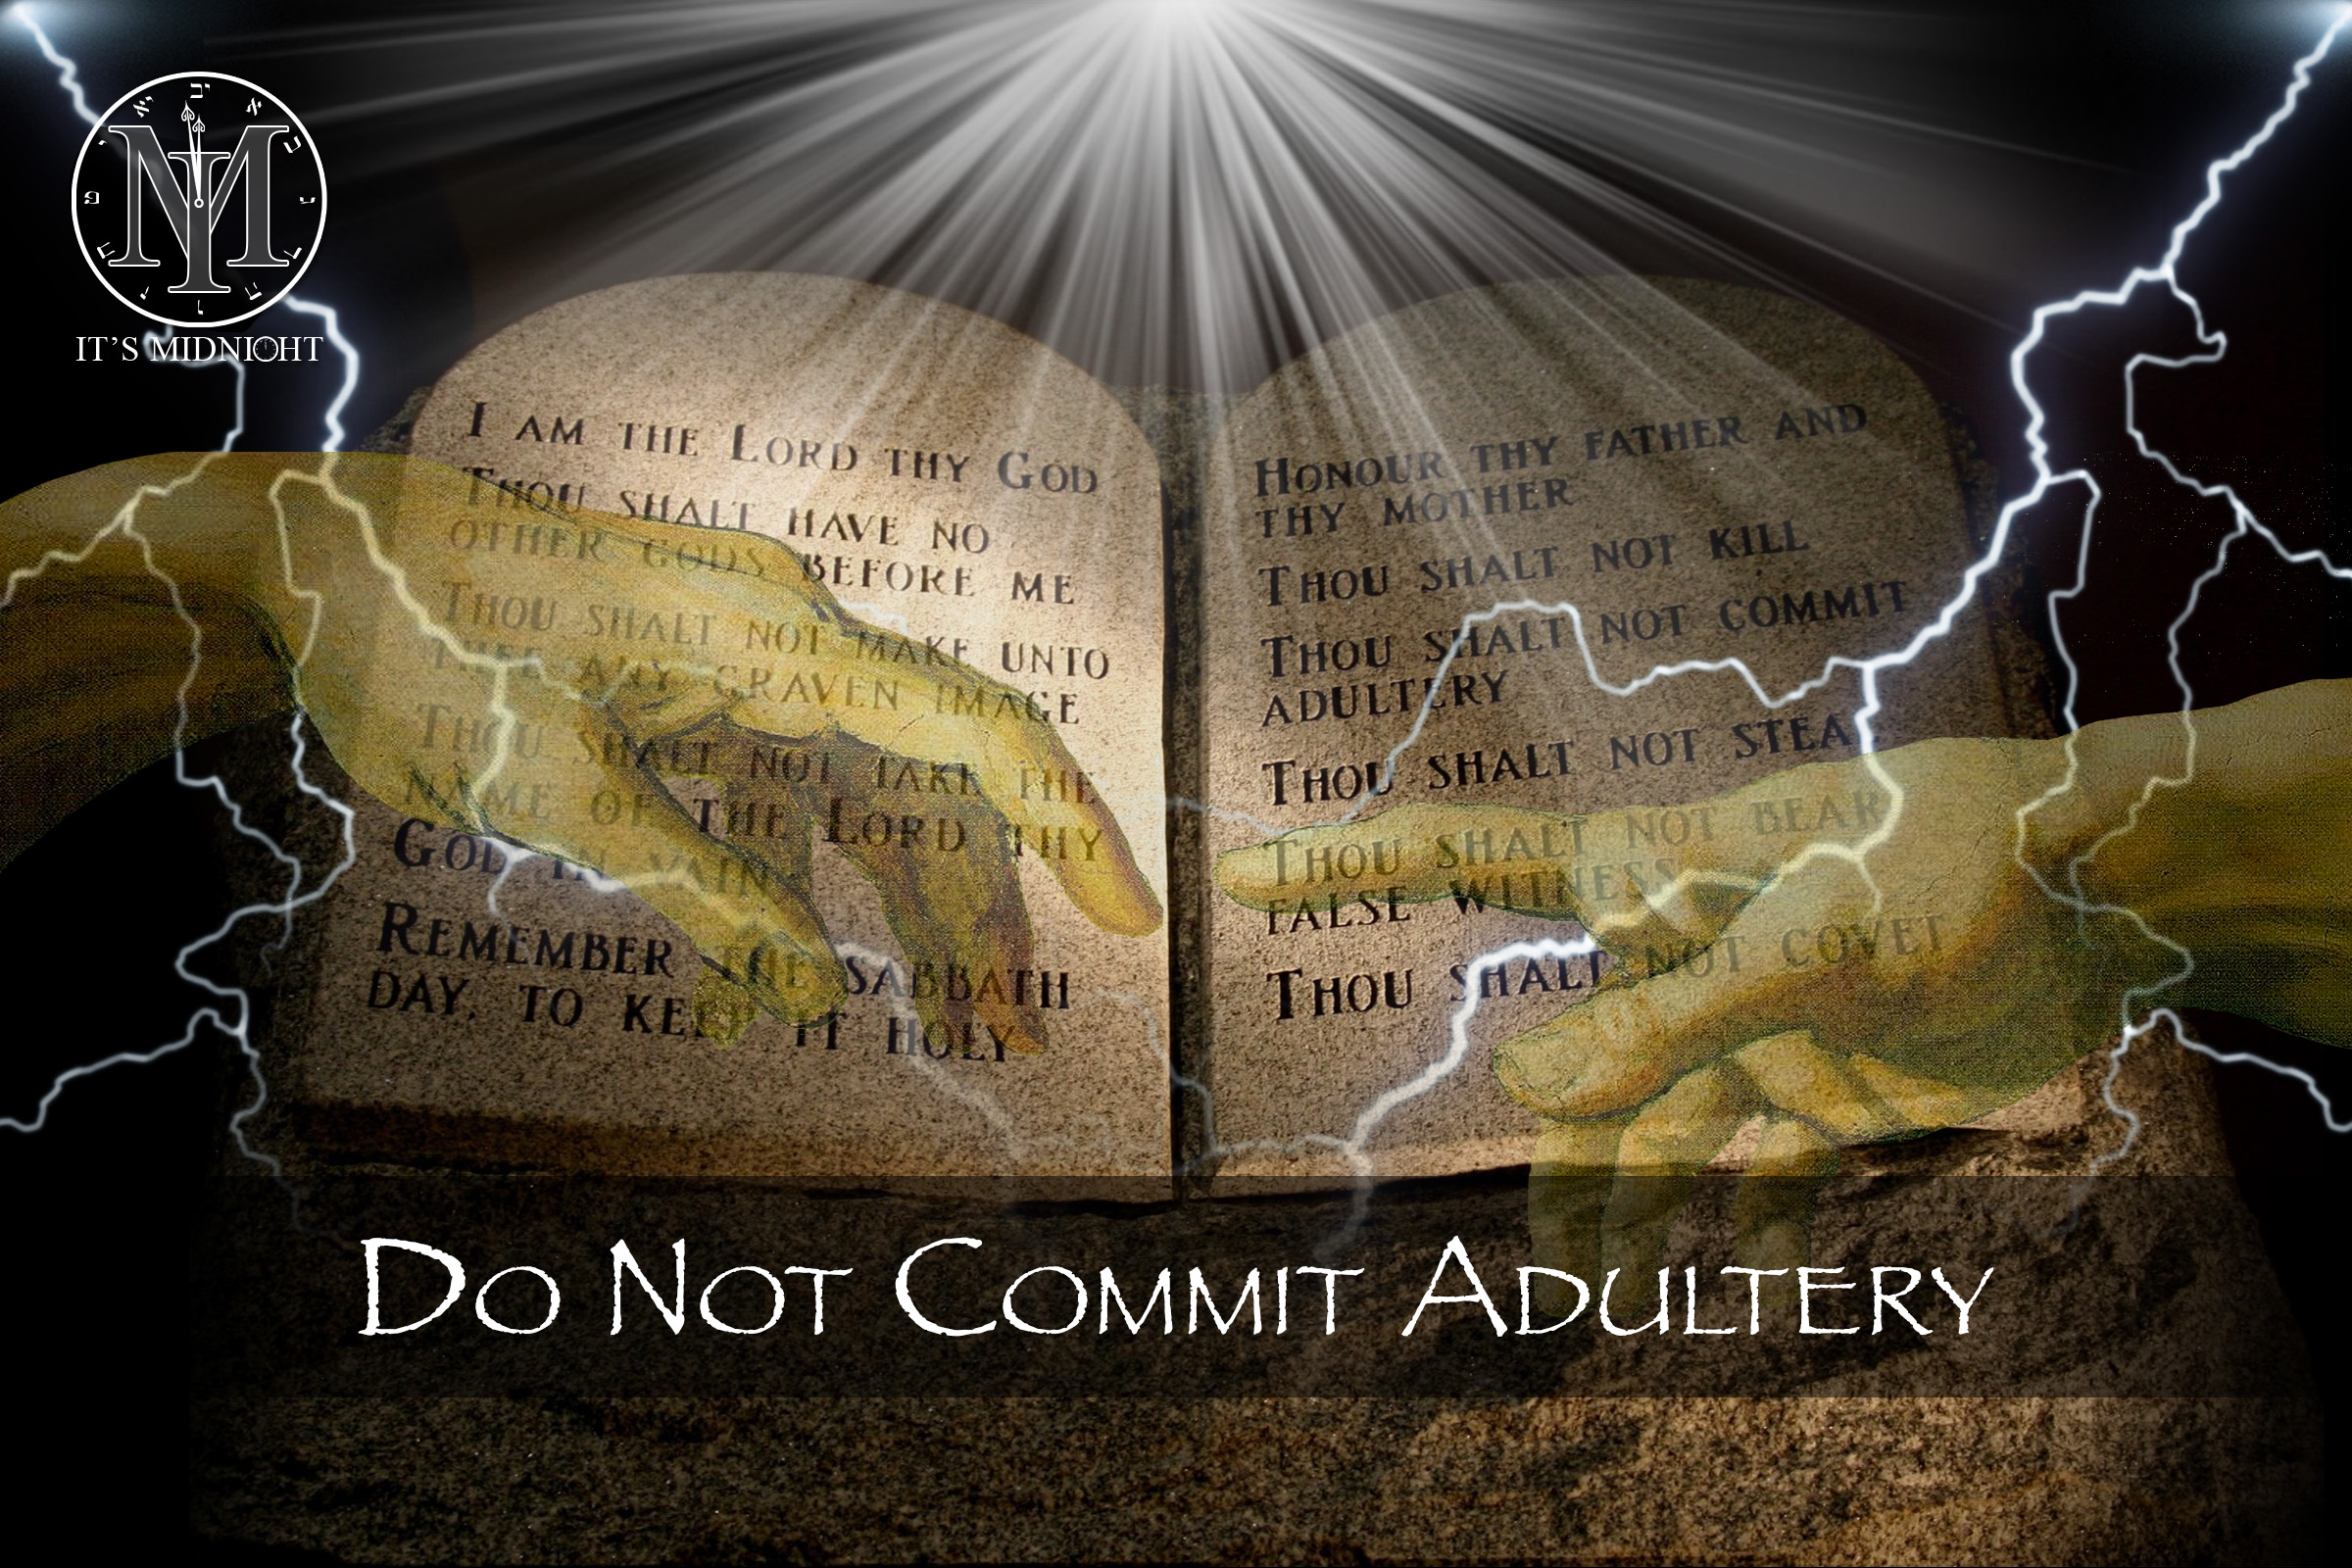 Seventh Commandment (Do Not Commit Adultery).jpg